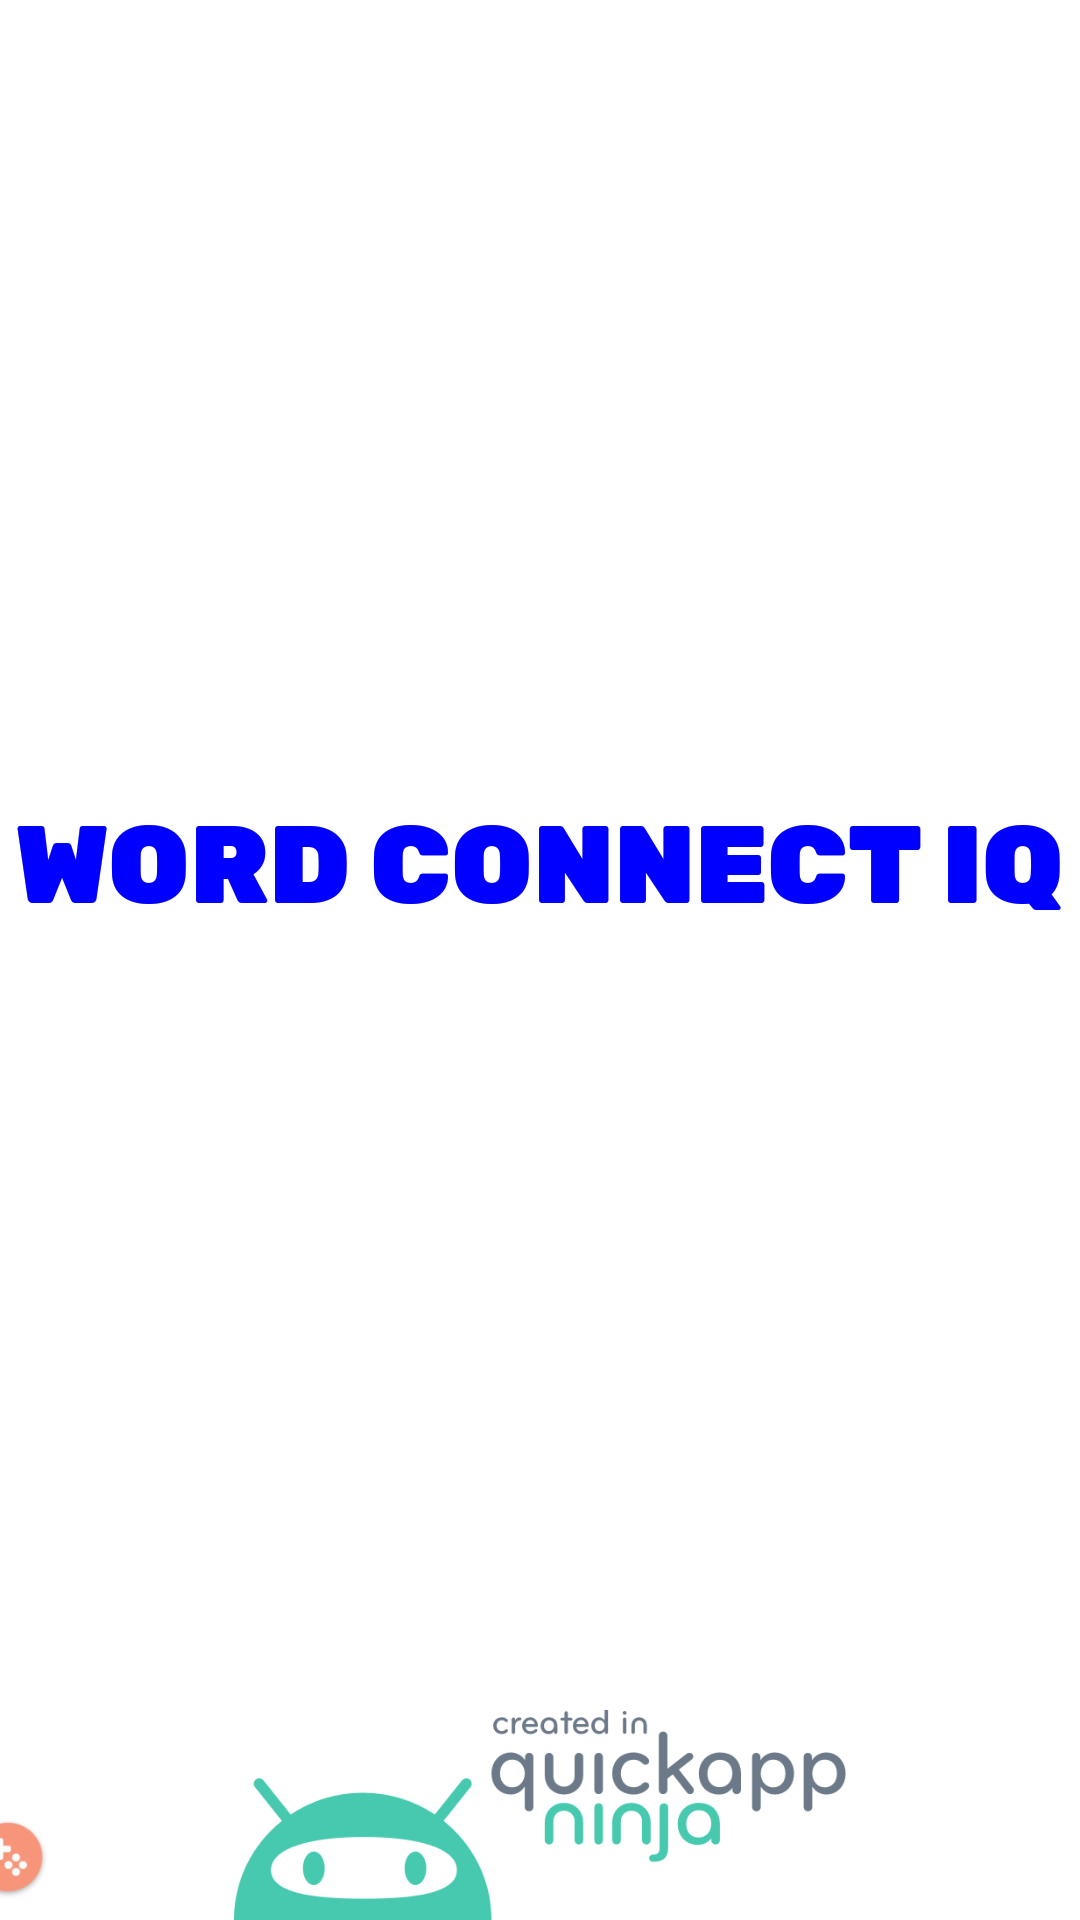 Word connect IQ: Amazon.es: Appstore para Android